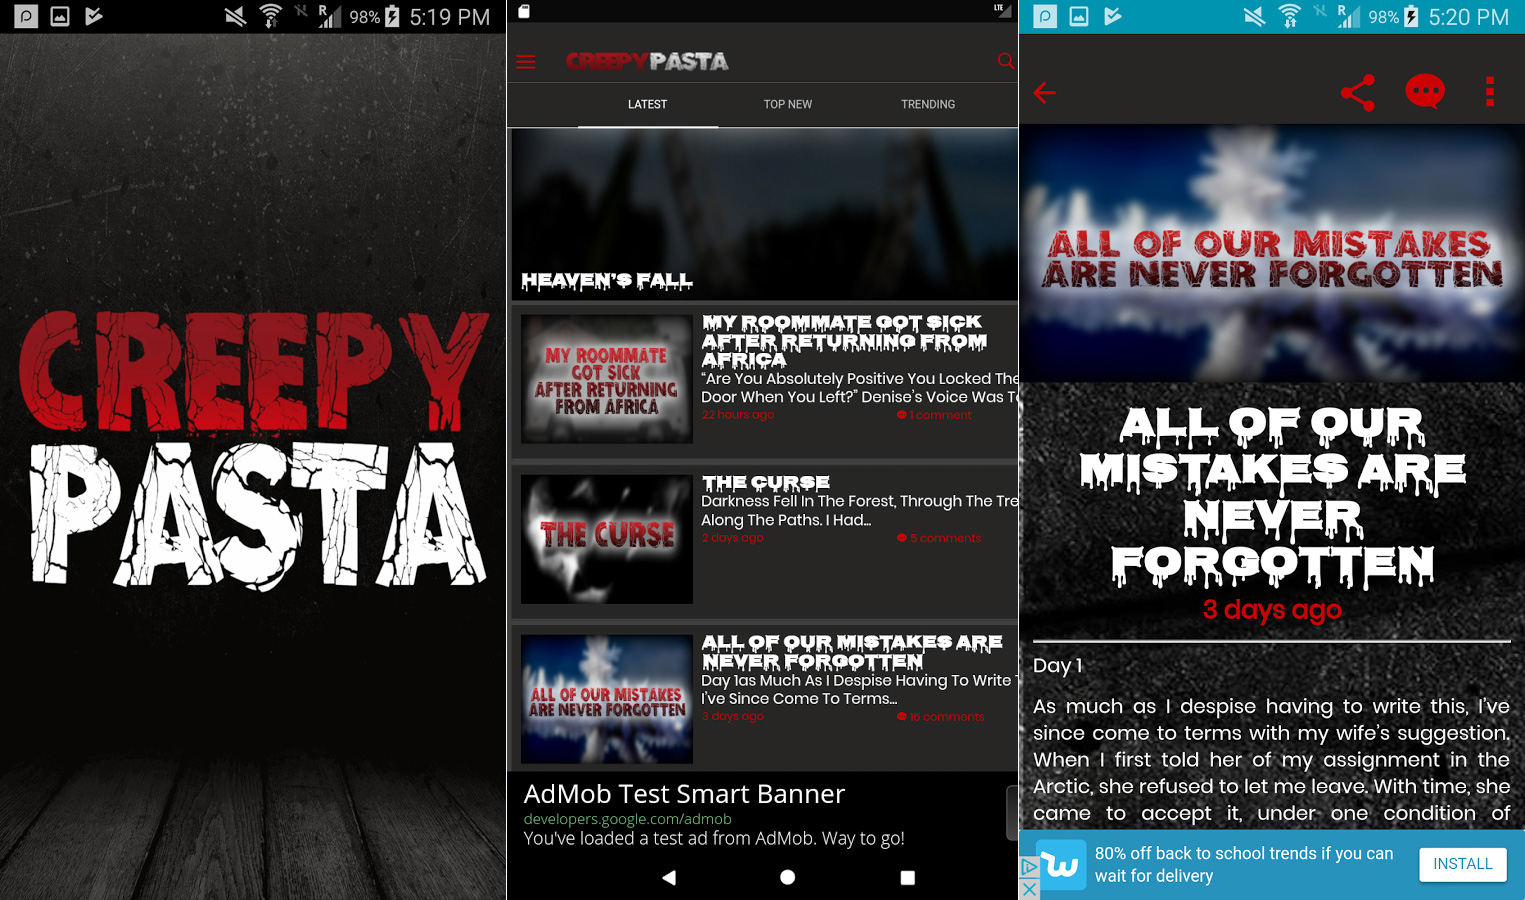 Creepypasta Android app screenshots